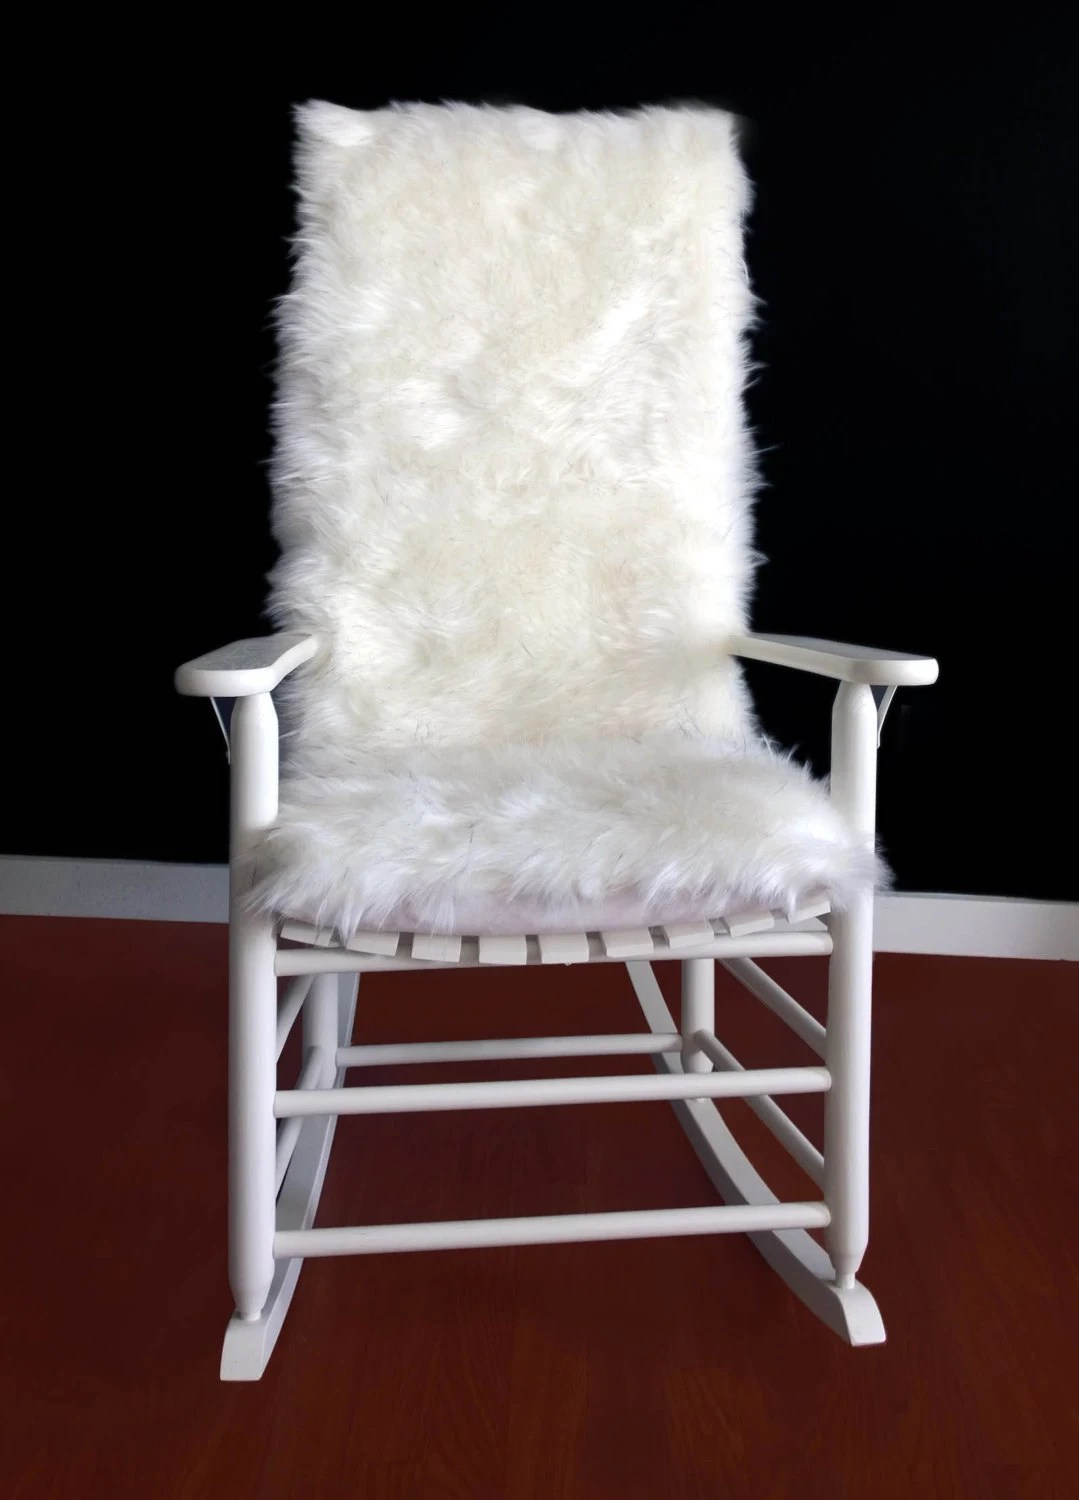 faux fur chair cover hickory sleeper sofas rocking cushion white black speckled